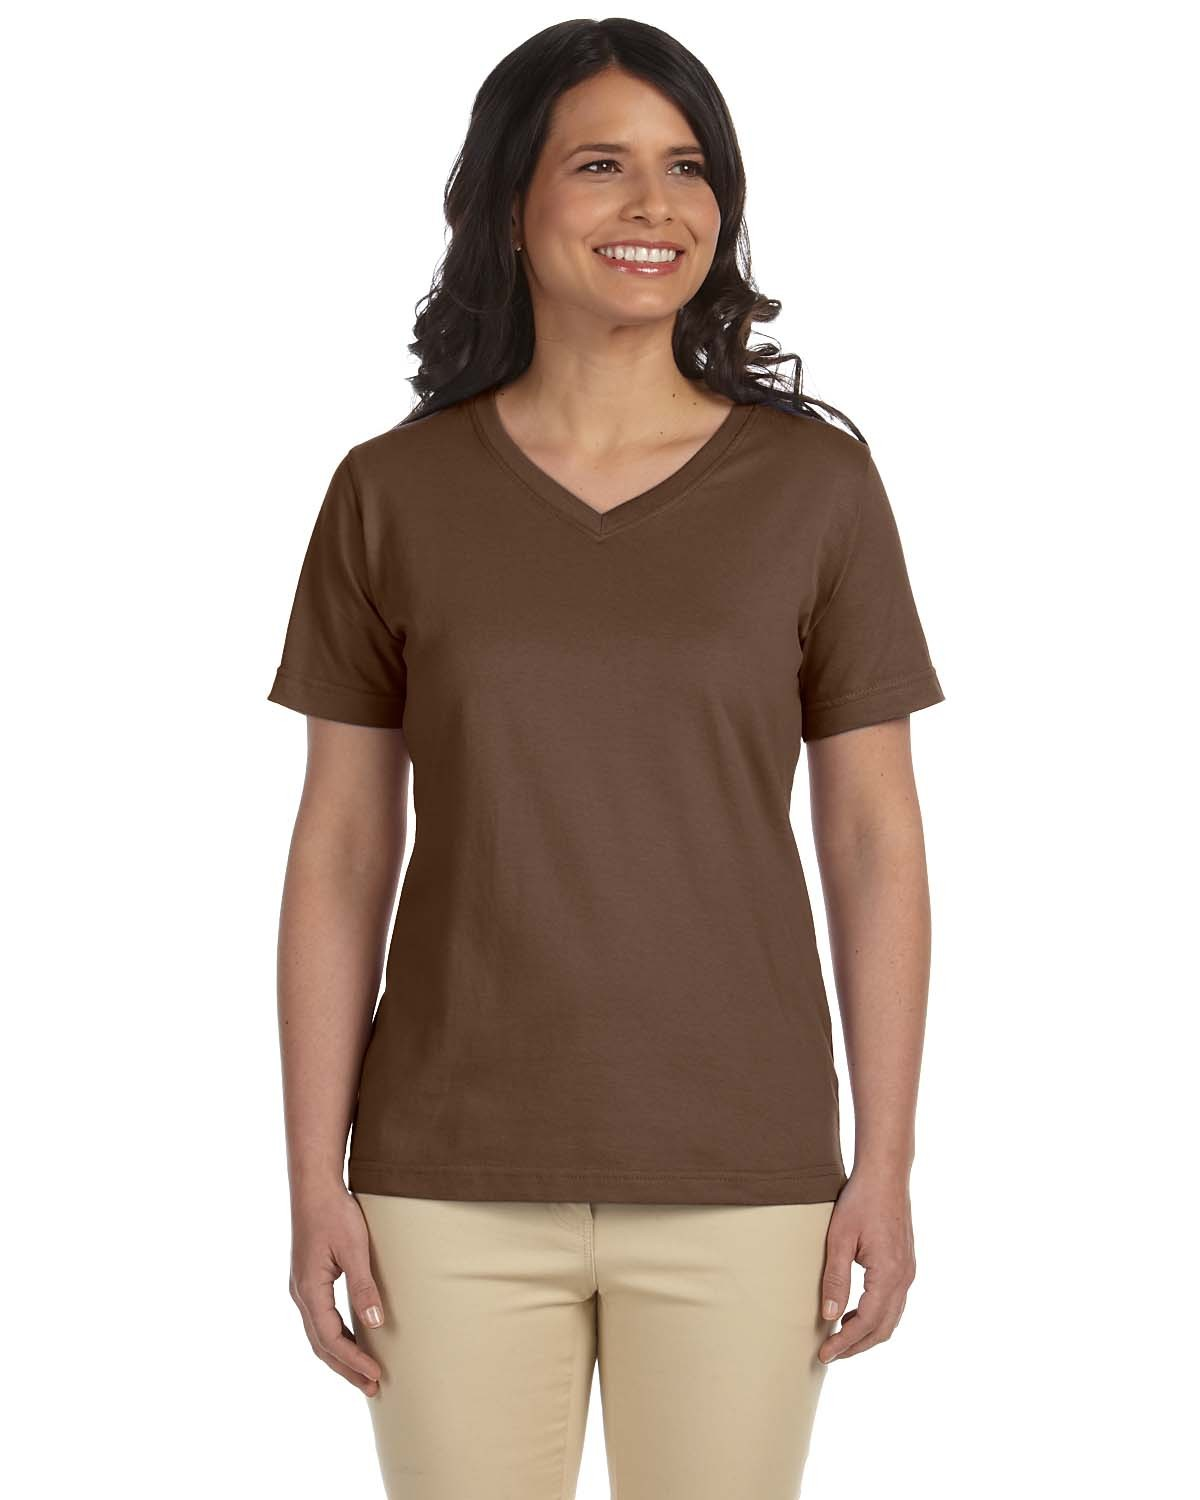 L-3587 LAT BROWN